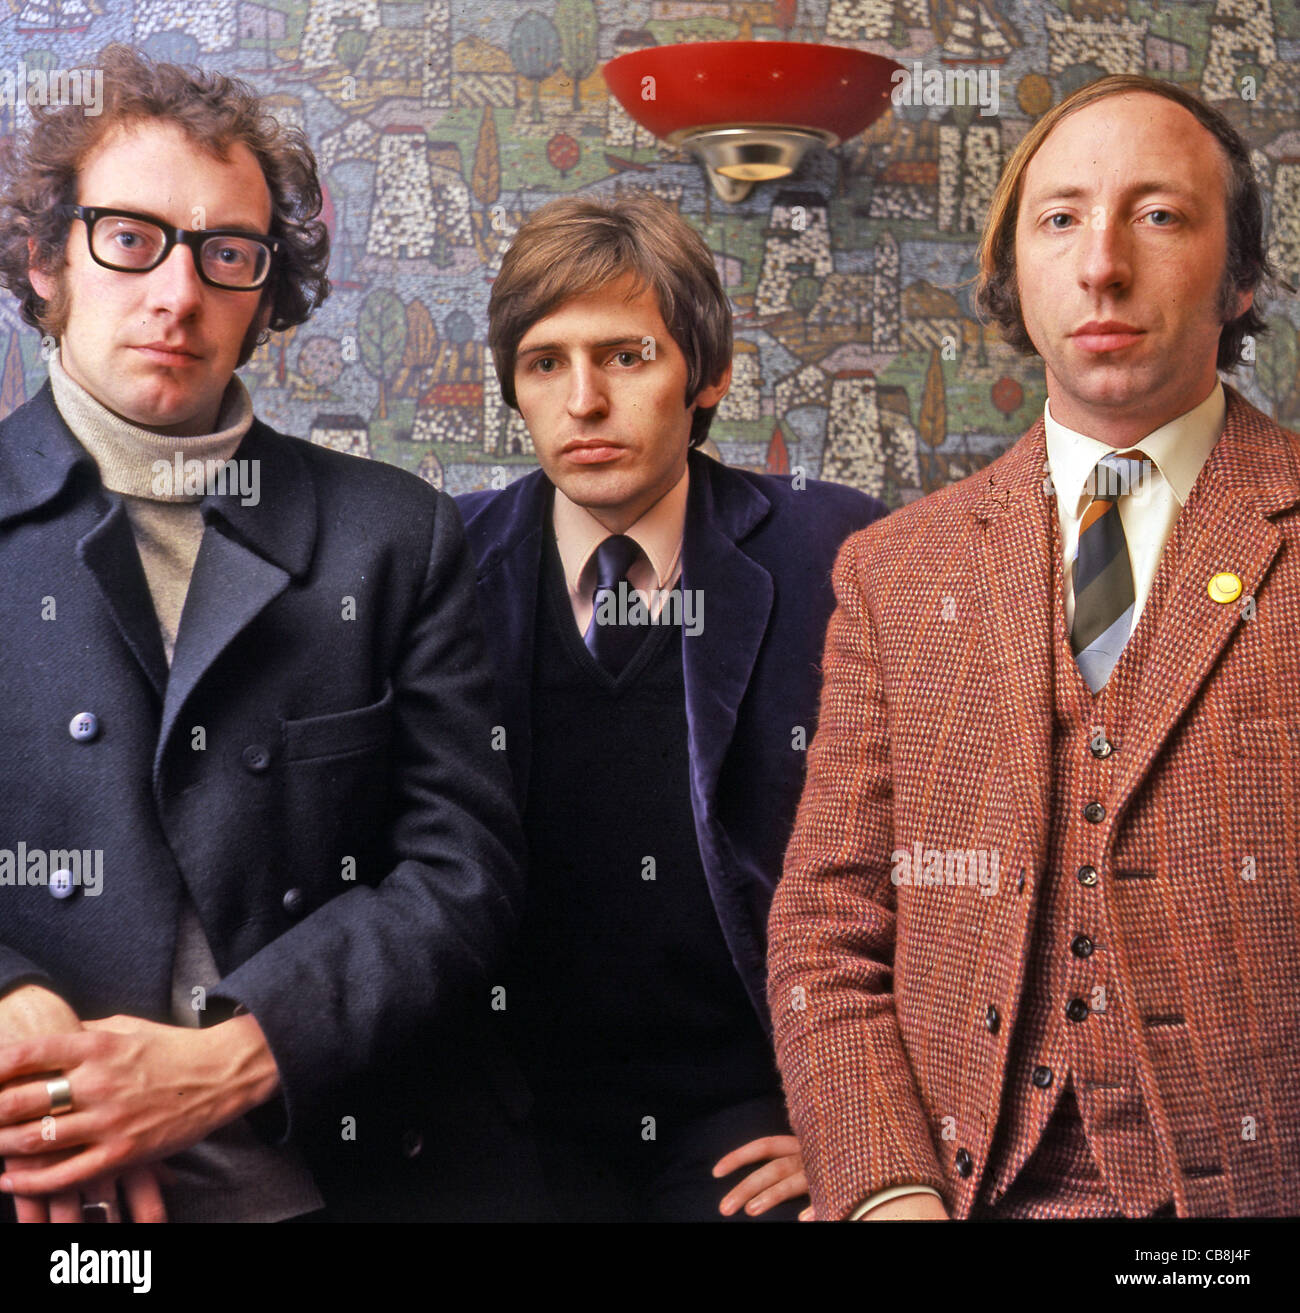 SCAFFOLD UK pop trio in December 1967 from left: John Gorman, Mike McGear and Roger McGough. Photo Tony Gale Stock Photo